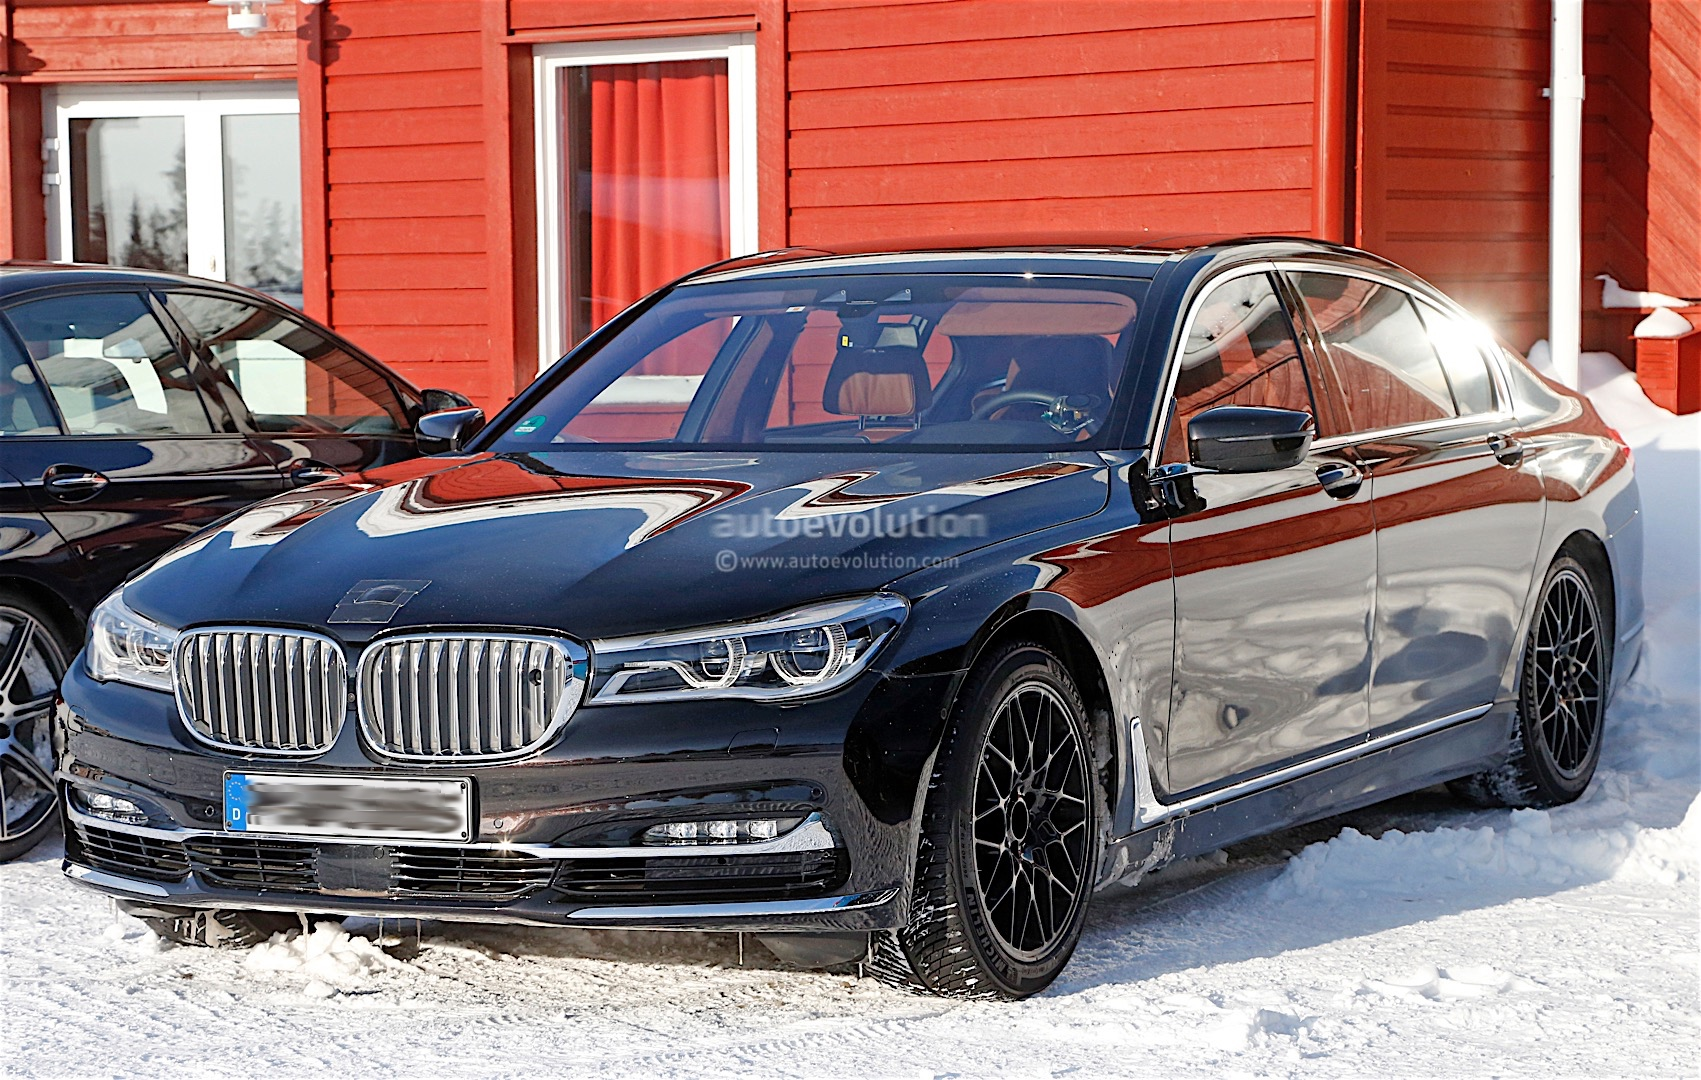 2018 BMW M7 Prototype Revealed in Latest Spyshots ...